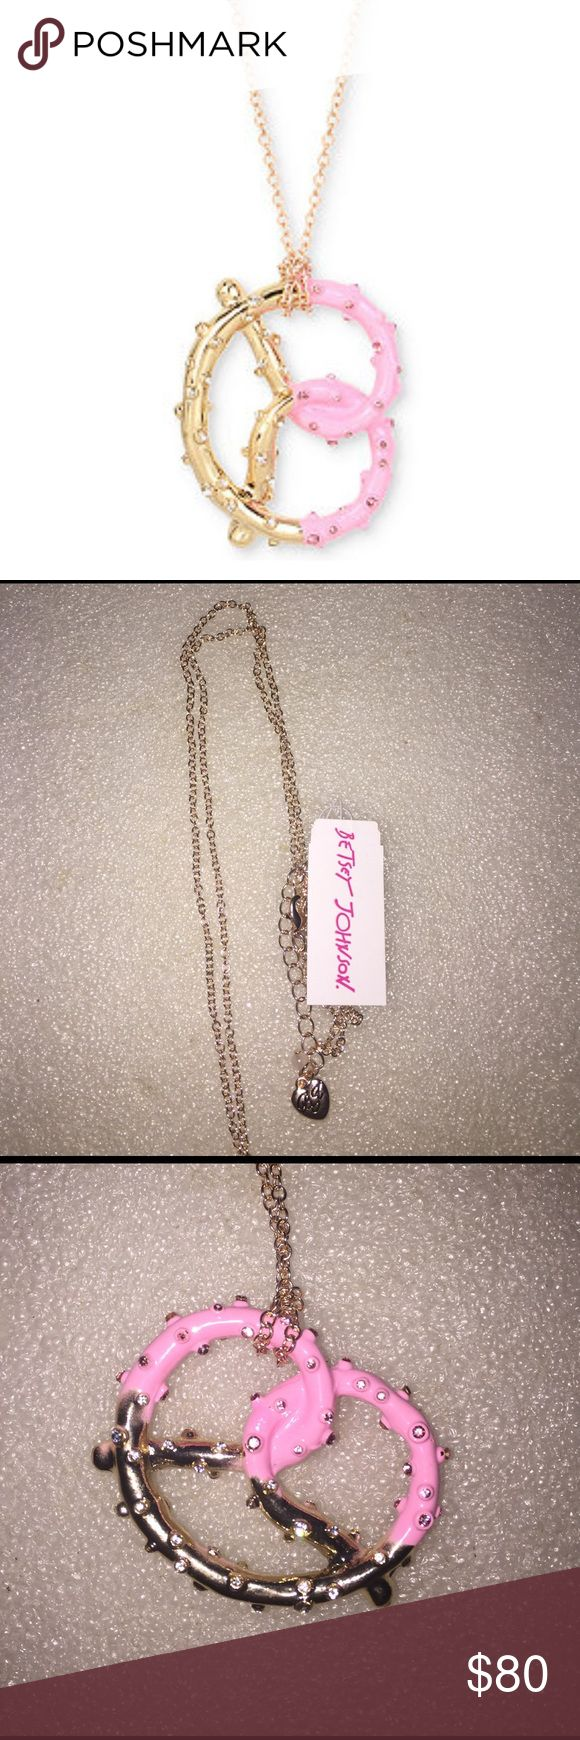 Betsey Johnson necklace Selling to buy betsey pieces I need. This is from the Marie Antoinette collection. The necklace is gold tone. The gorgeous charm is of a twisted pretzel. The gold and pink pretzel has encrusted rhinestones all around. NWT Betsey Johnson Jewelry Necklaces